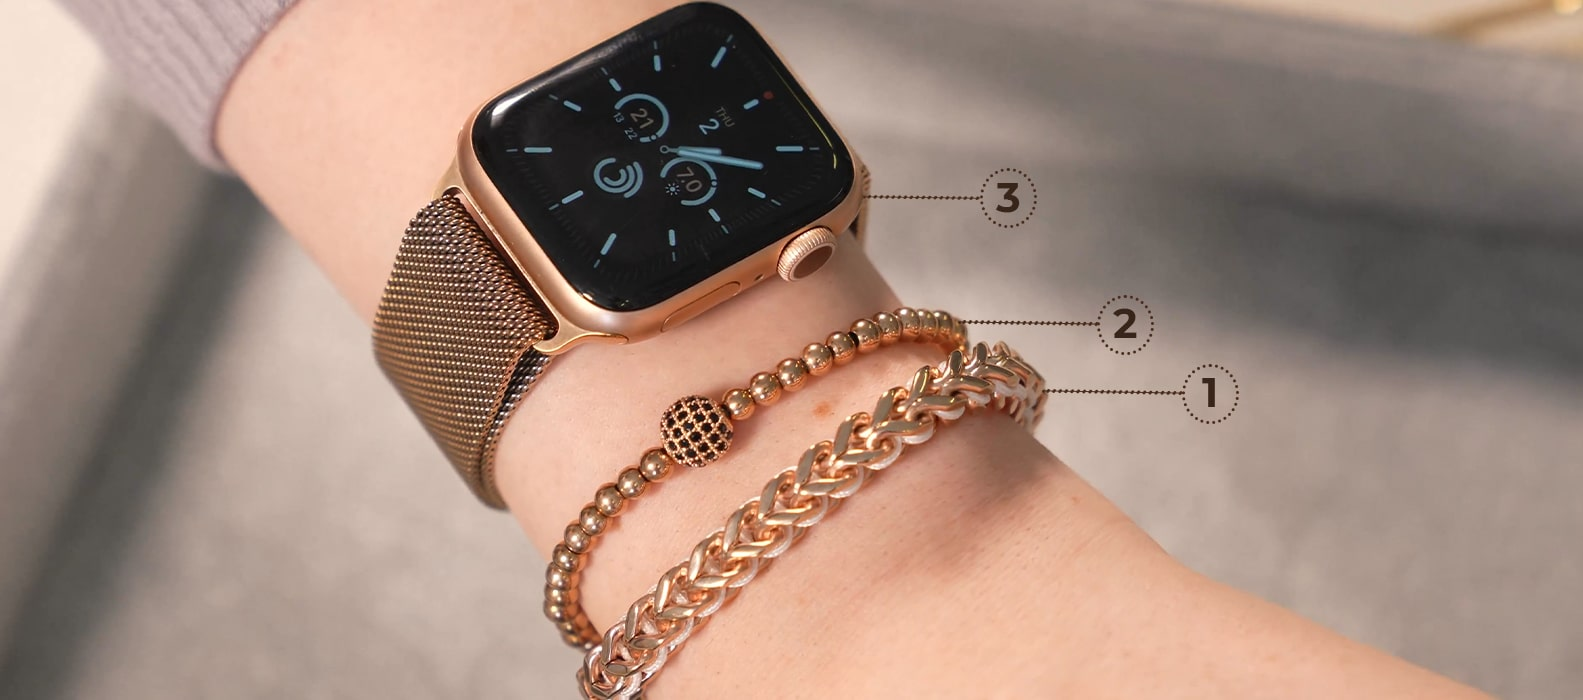 NOGU How to Stack and Style Your Handmade Jewelry with Apple Watches and other Accessories (Jewelry Tutorial)